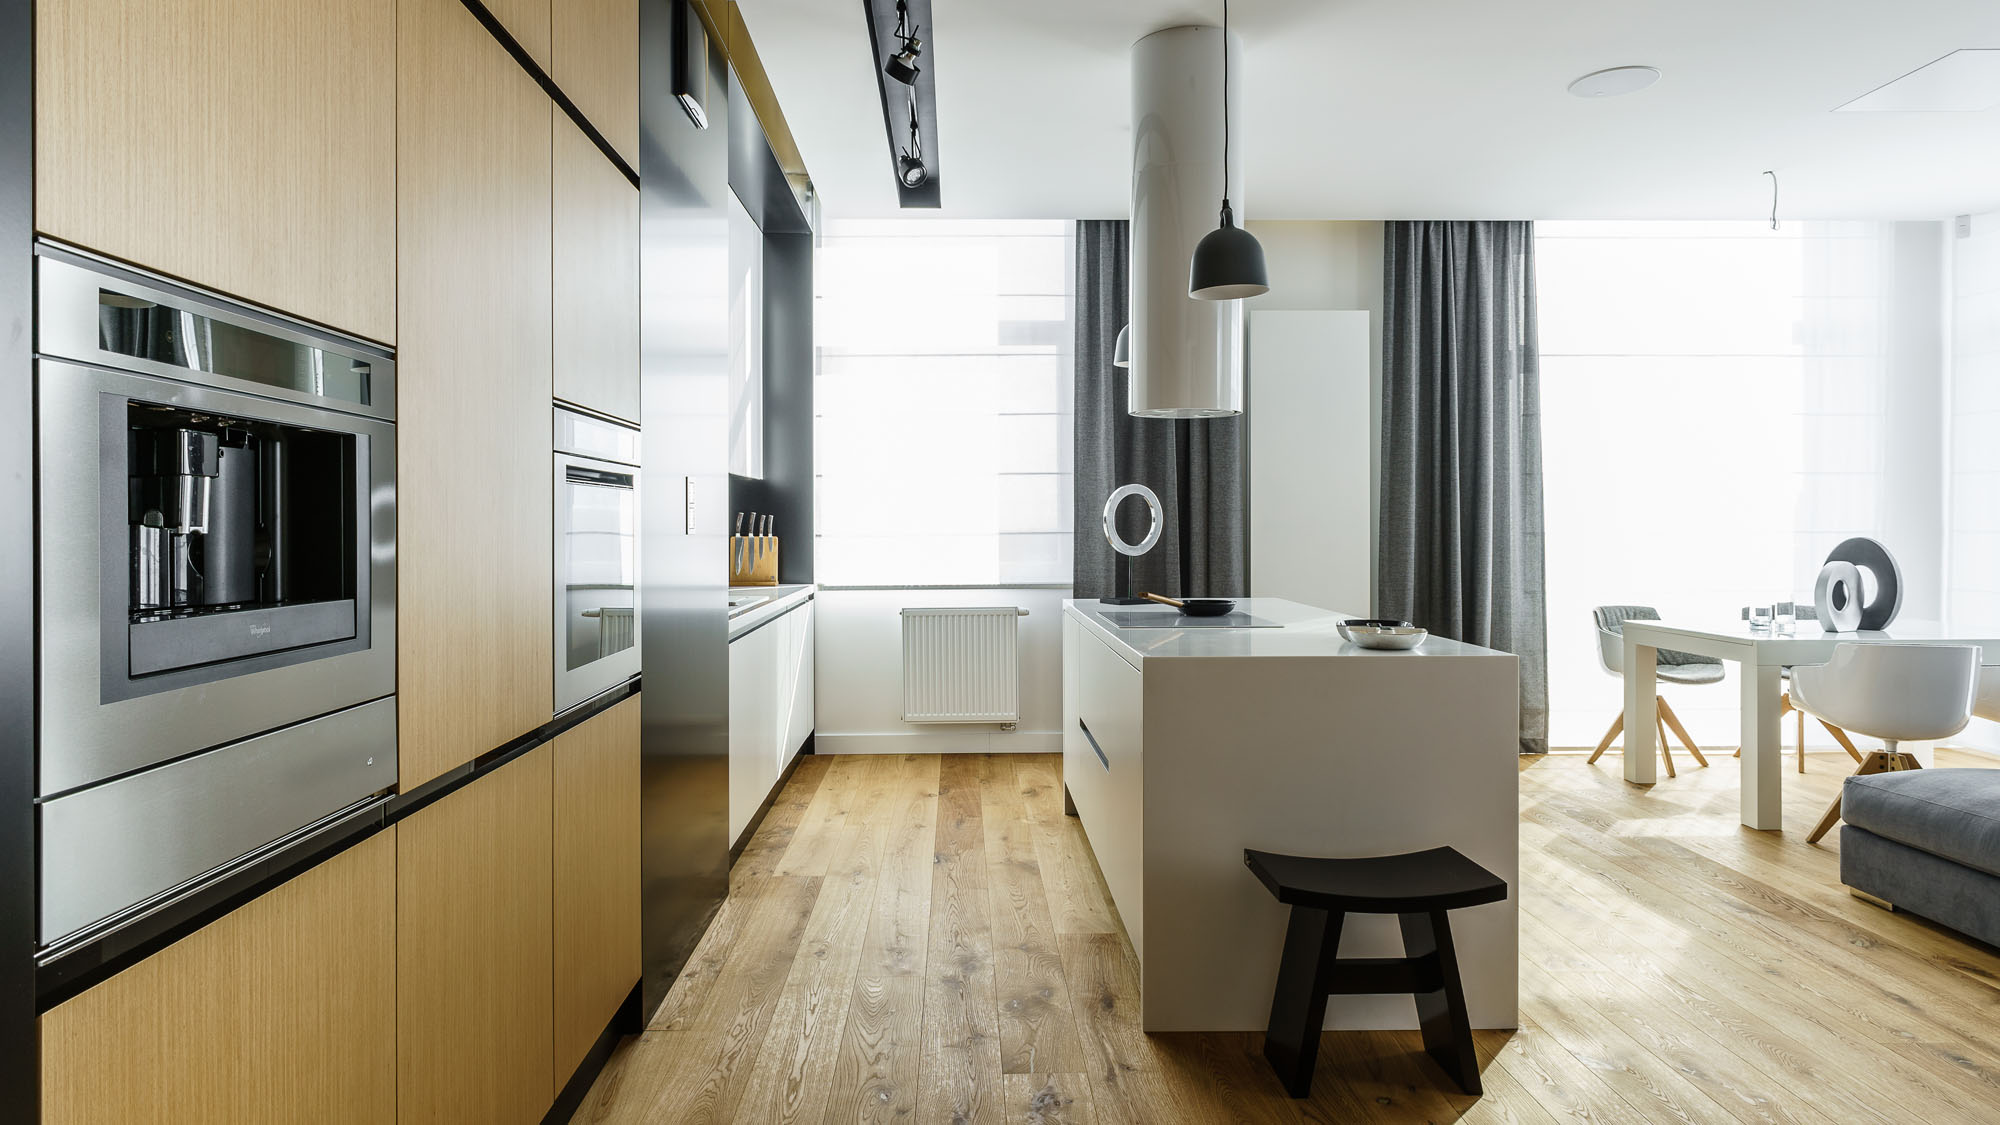 Modern Metallic, Wooden, White Theme Three Bedroom Apartment in Gdynia by Dragon Art-09